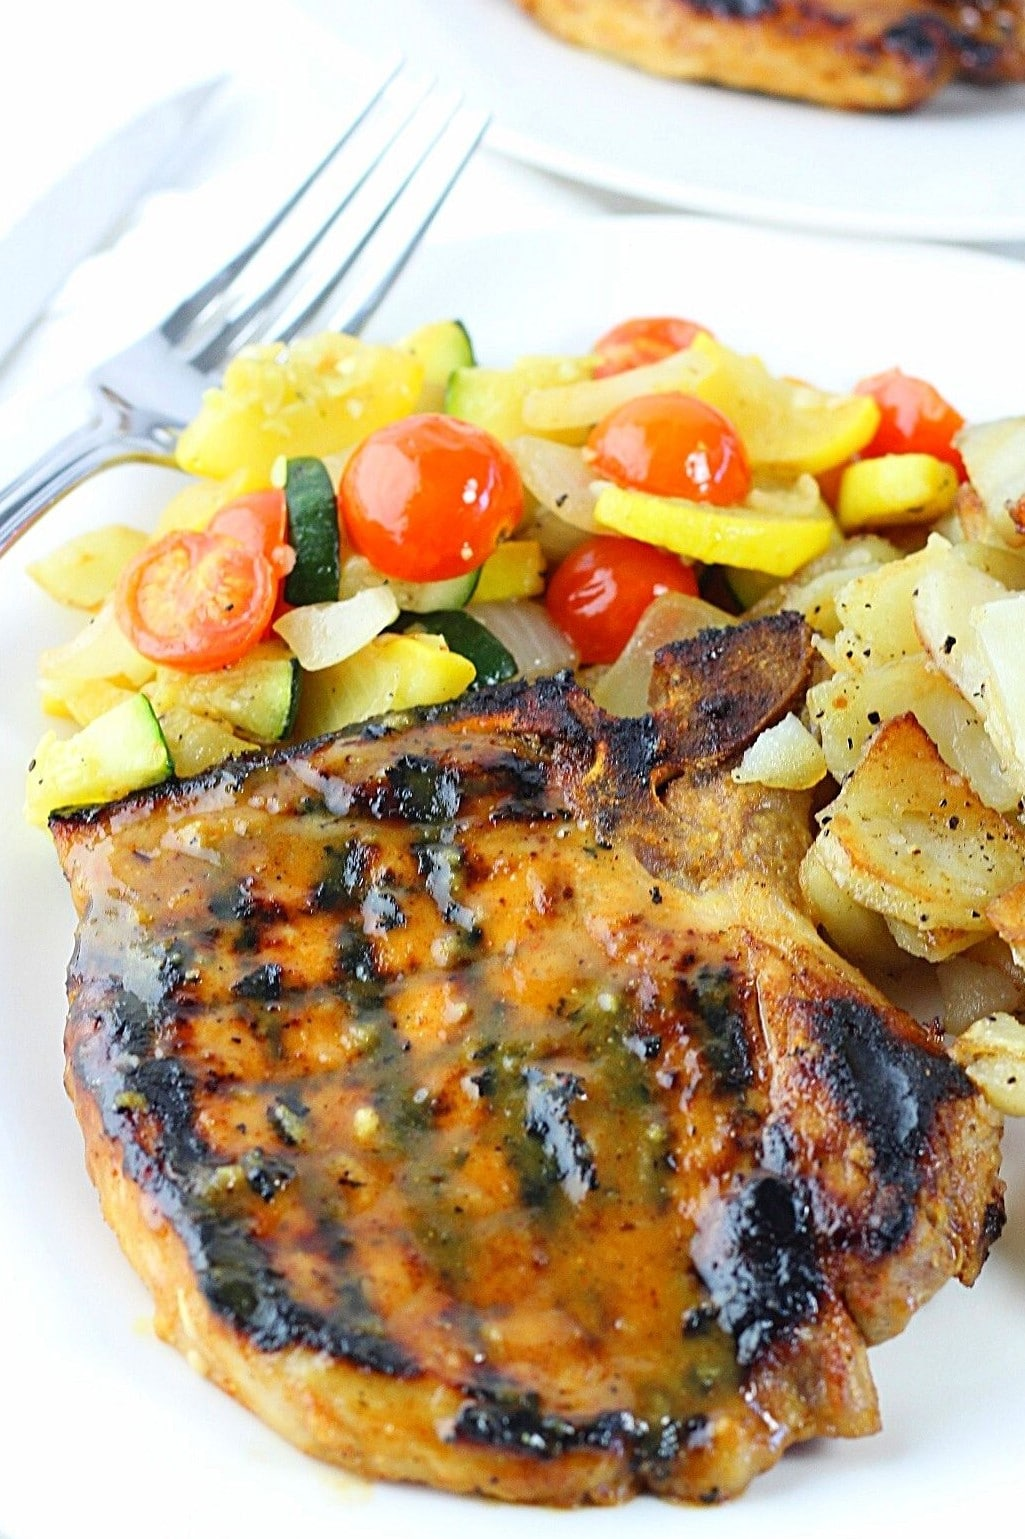 honey mustard grilled pork chop on a plate with vegetables and potatoes and a fork on the side